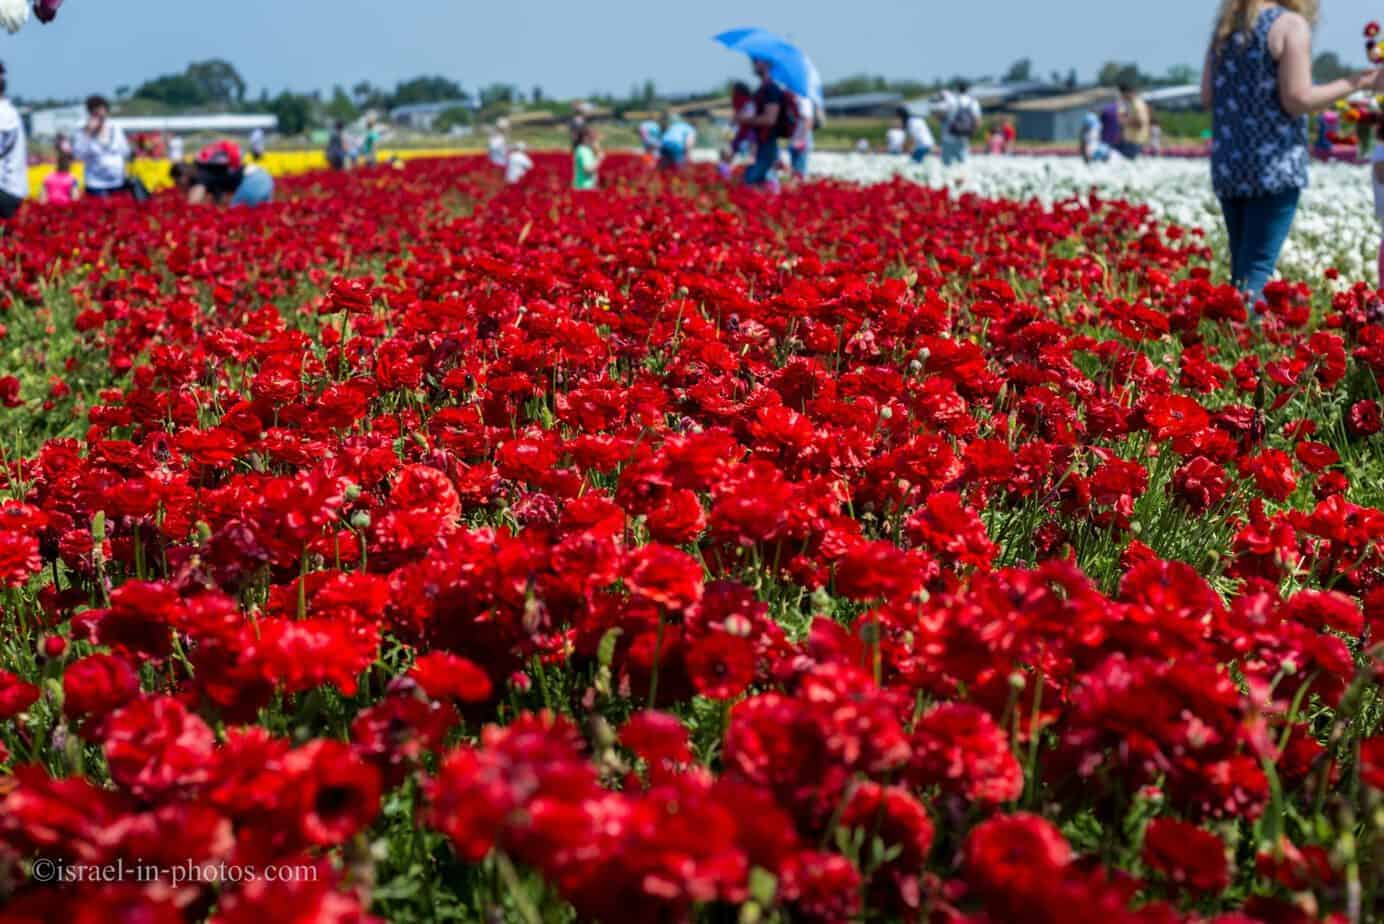 Buttercup Picking Festival in Be'er Tuvia